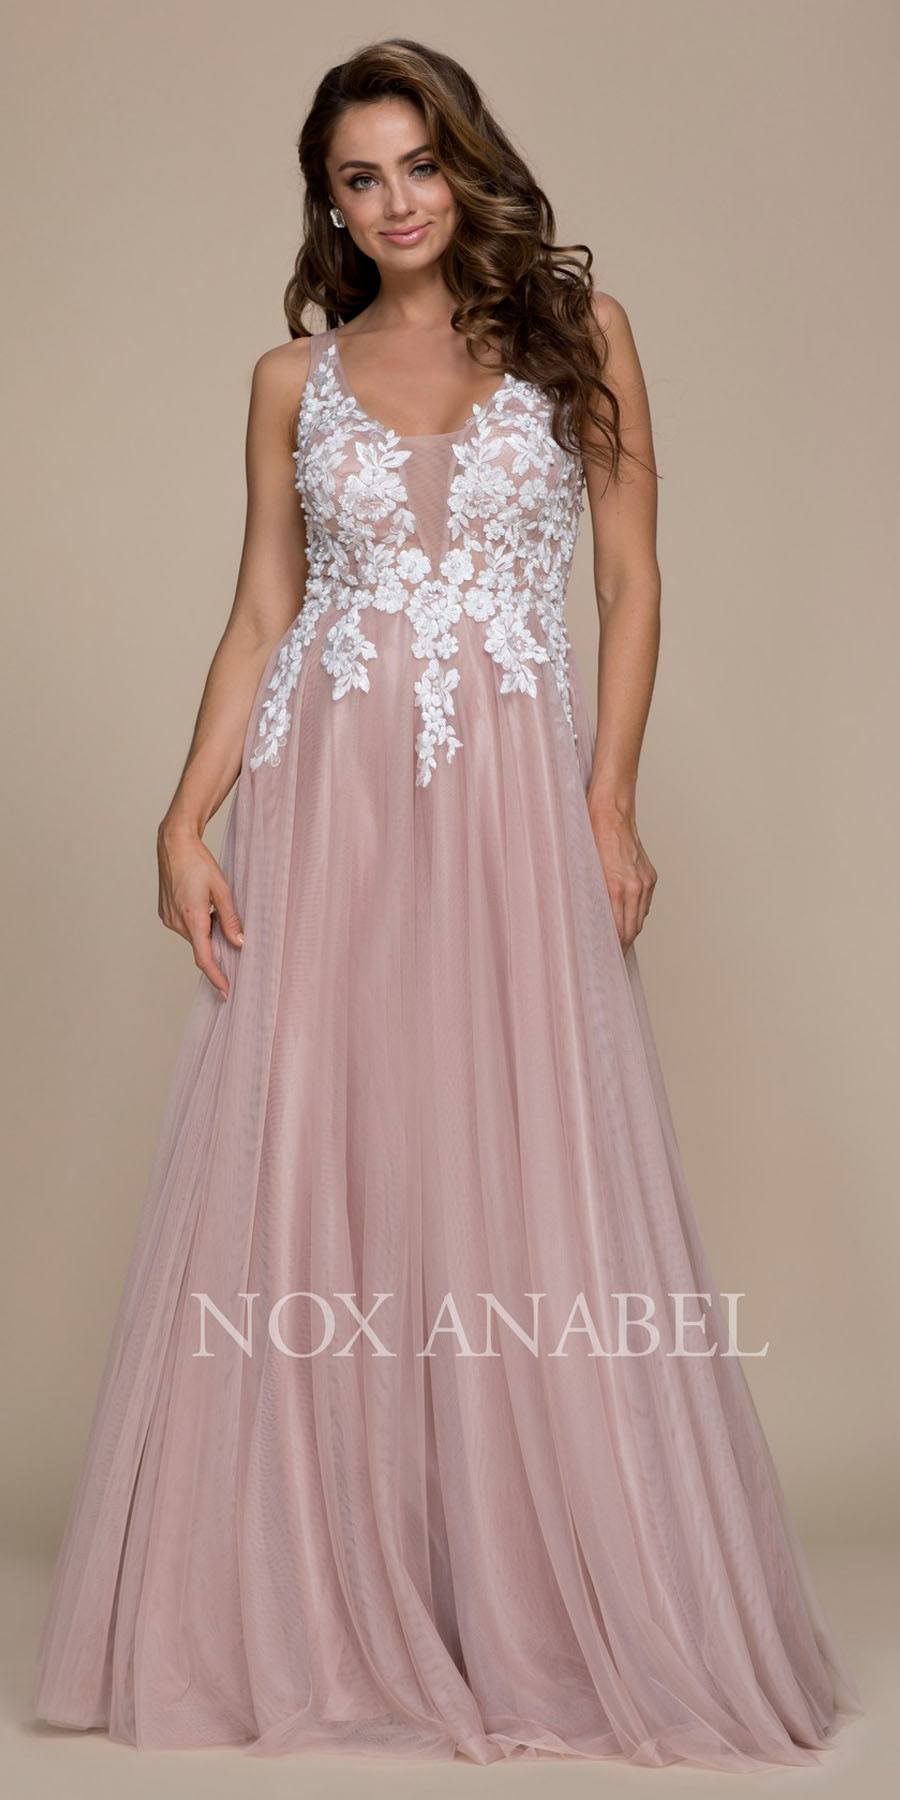 Tan Appliqued Bodice Floor Length Formal Dress Cut Out Back ...